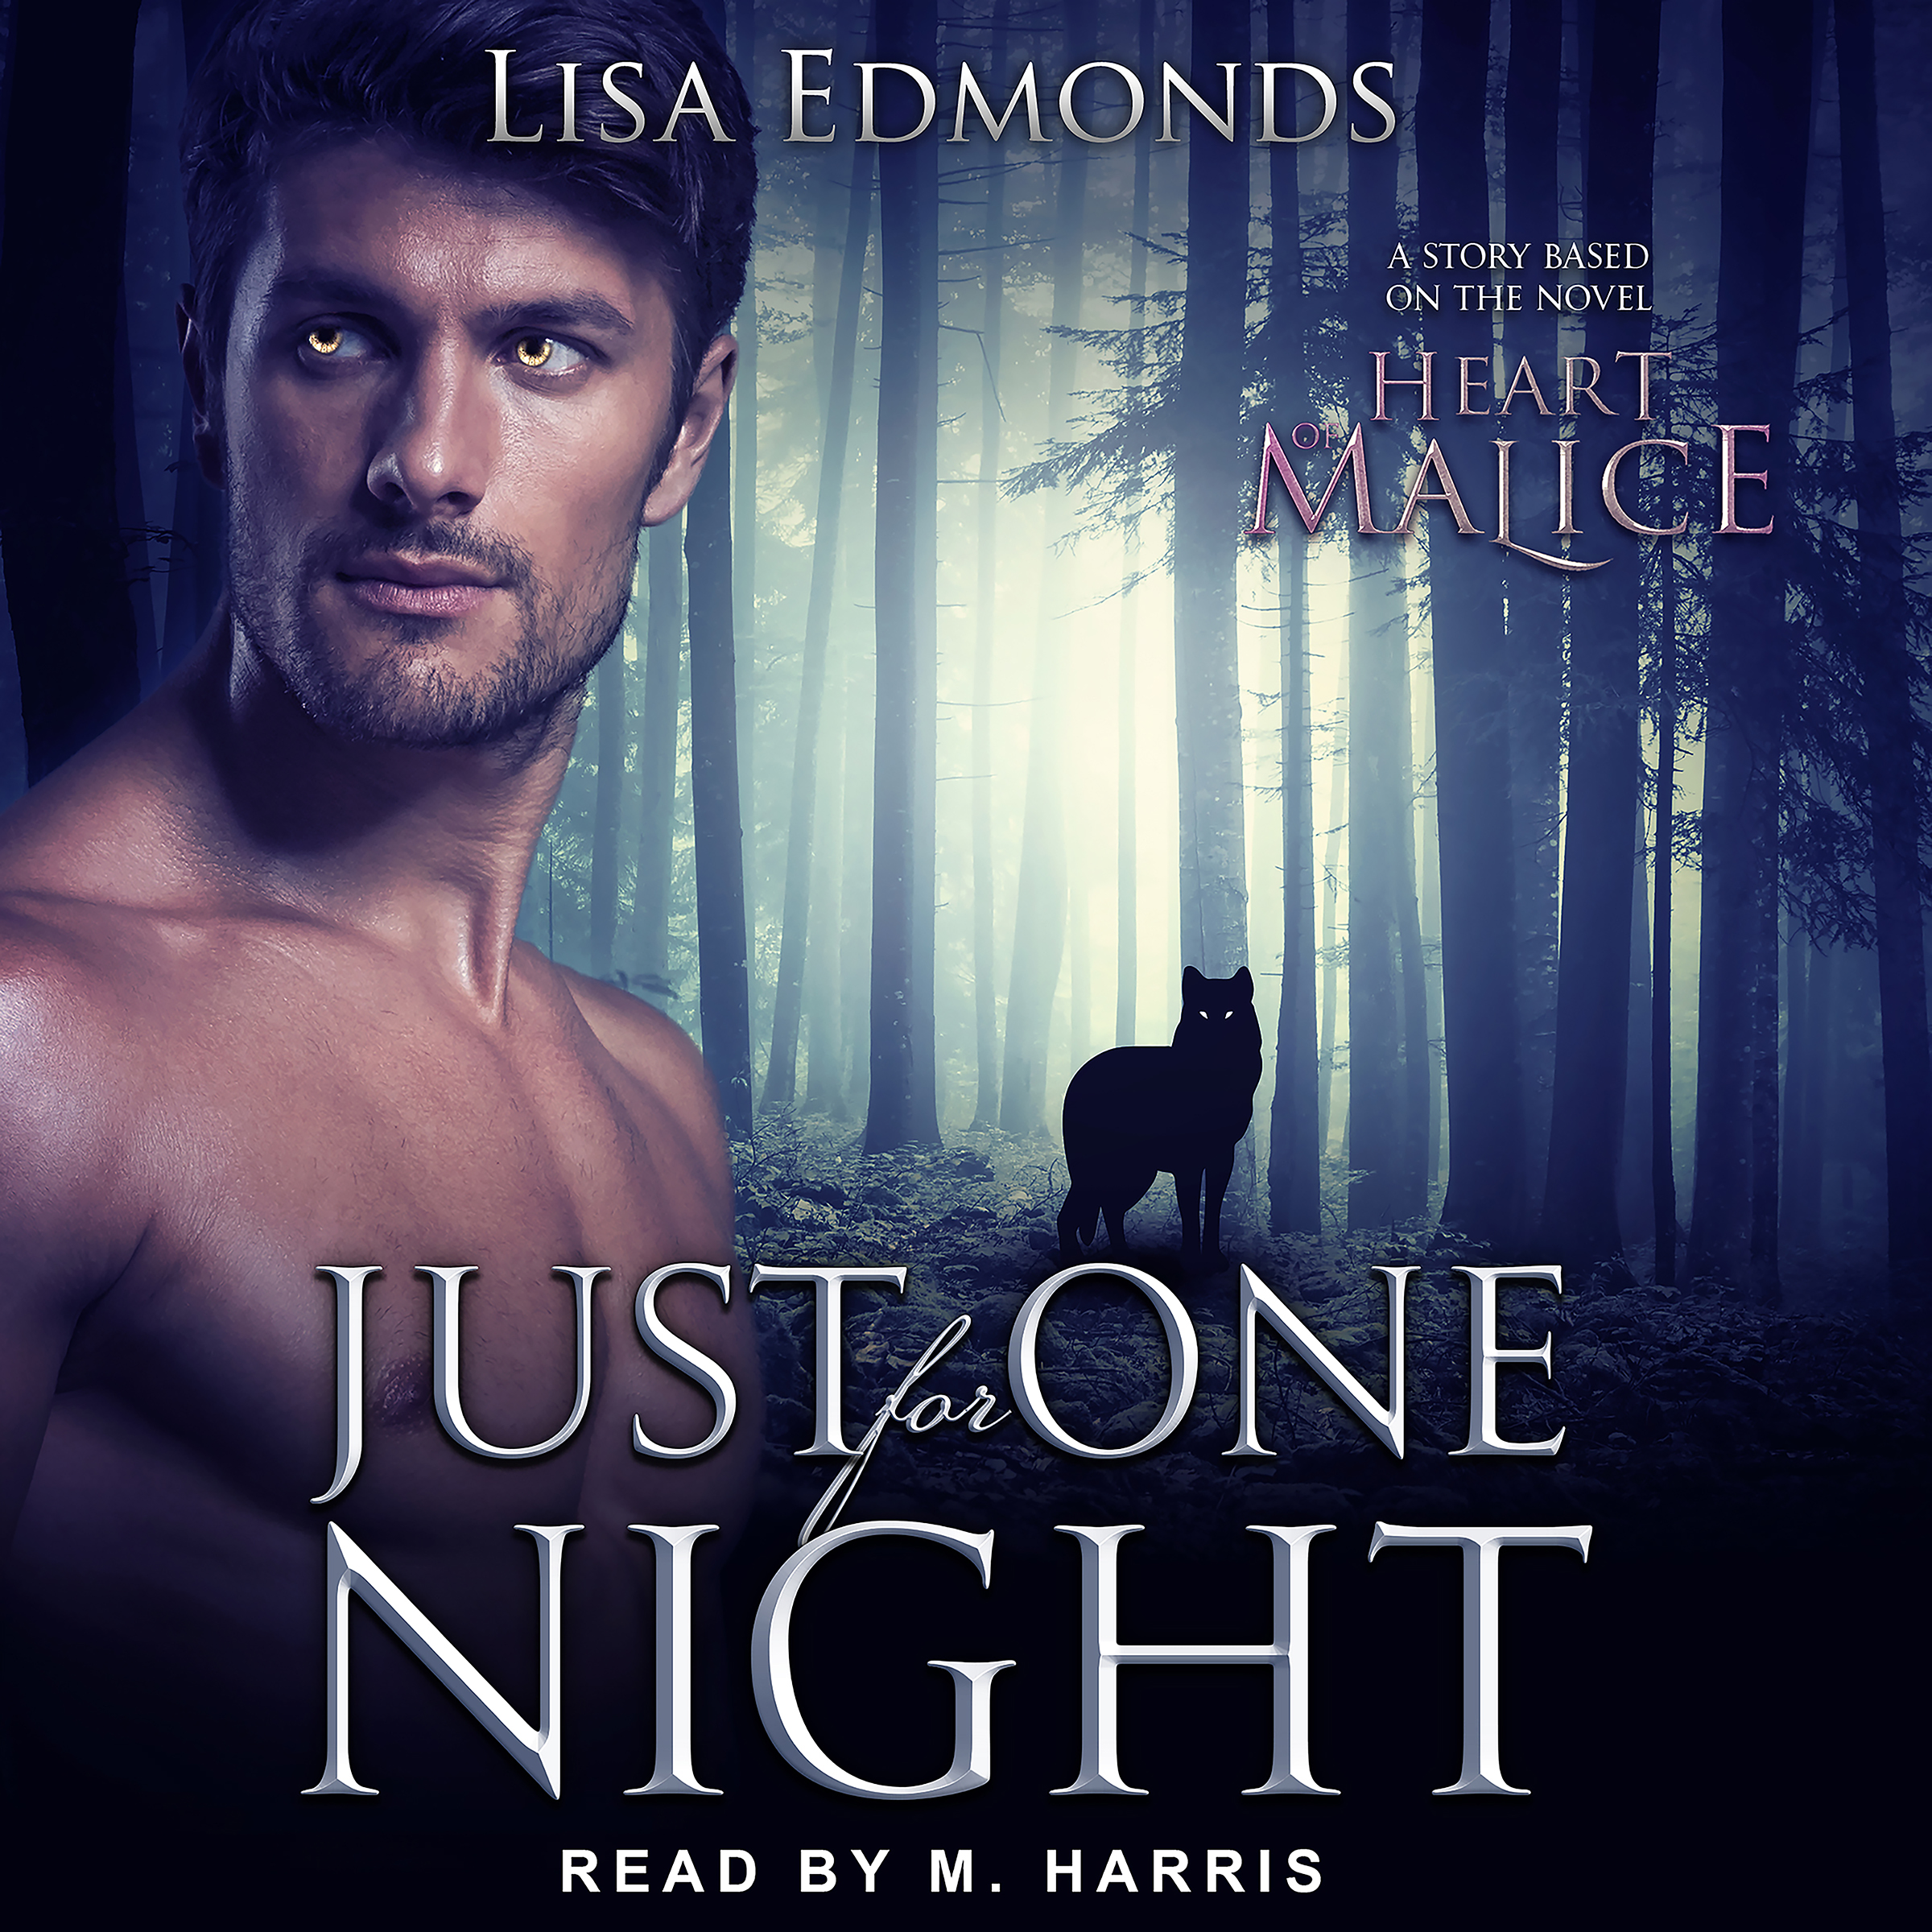 Available now from Amazon, Audible, and iTunes - Listen to Sean's retelling of how he and Alice met at Hawthorne's, read to you by narrator M. Harris!